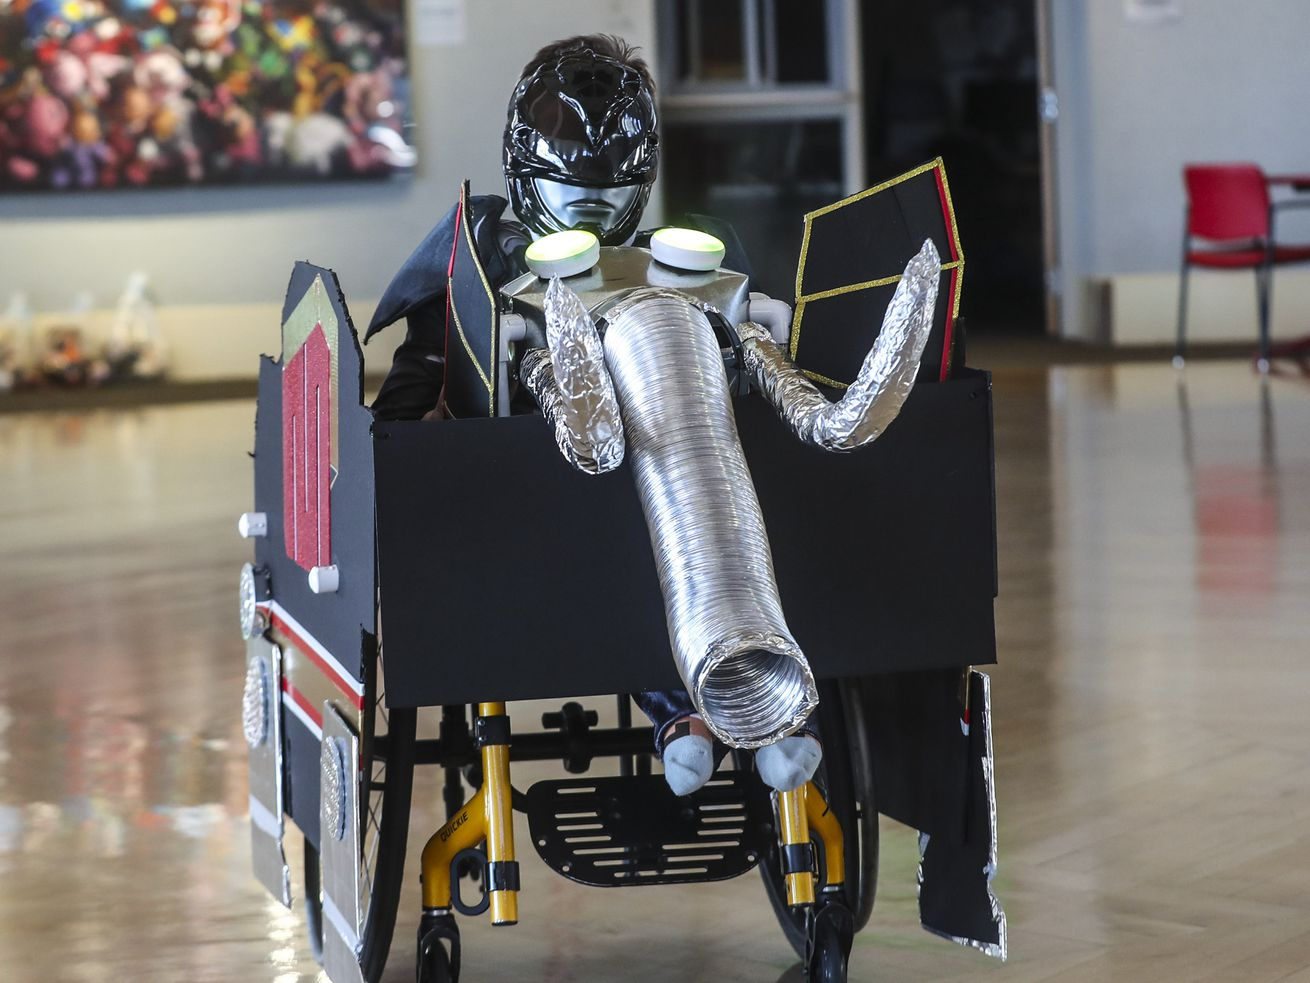 Skylar Skuza zips around in his Power Ranger costume and his decorated wheelchair at Shriners Hospitals for Children in Salt Lake City on Thursday, Oct. 15, 2020. Hospital staff and volunteers transformed his wheelchair during the hospital's annual wheelchair costume clinic.